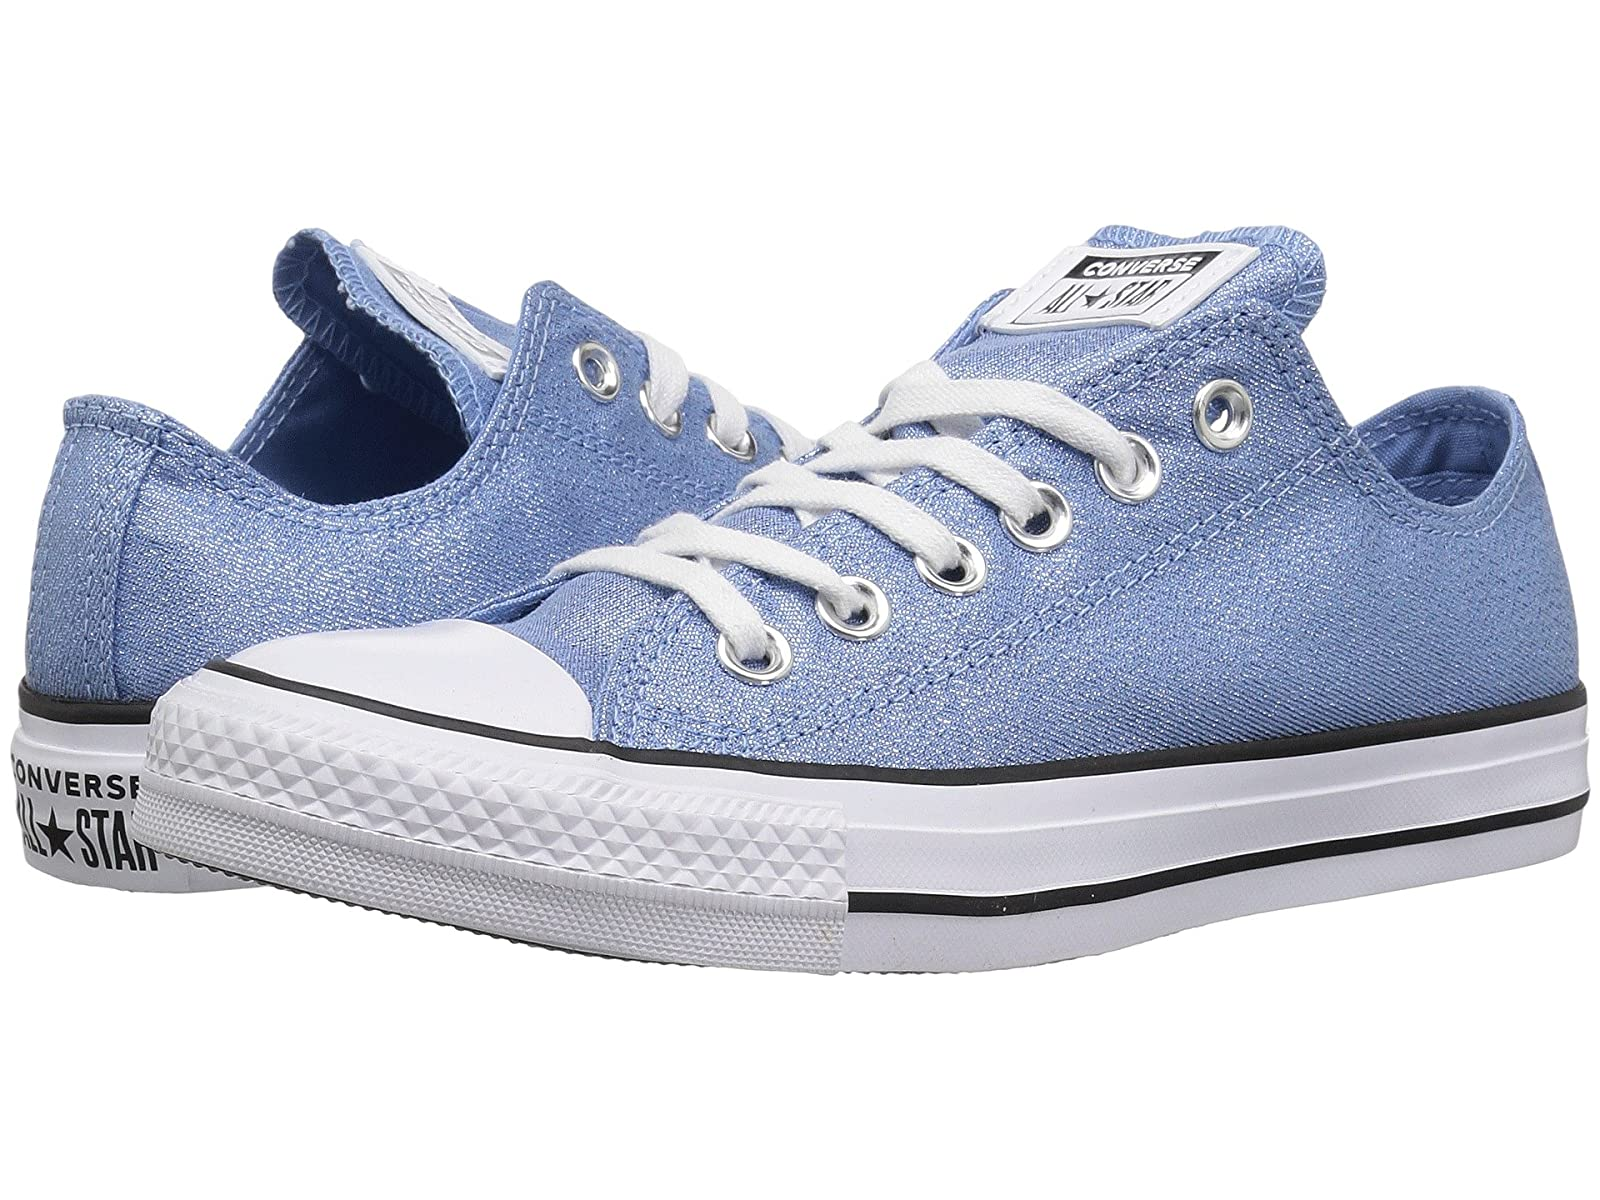 Converse Chuck Taylor All Star - Precious Metals Textile OxAtmospheric grades have affordable shoes